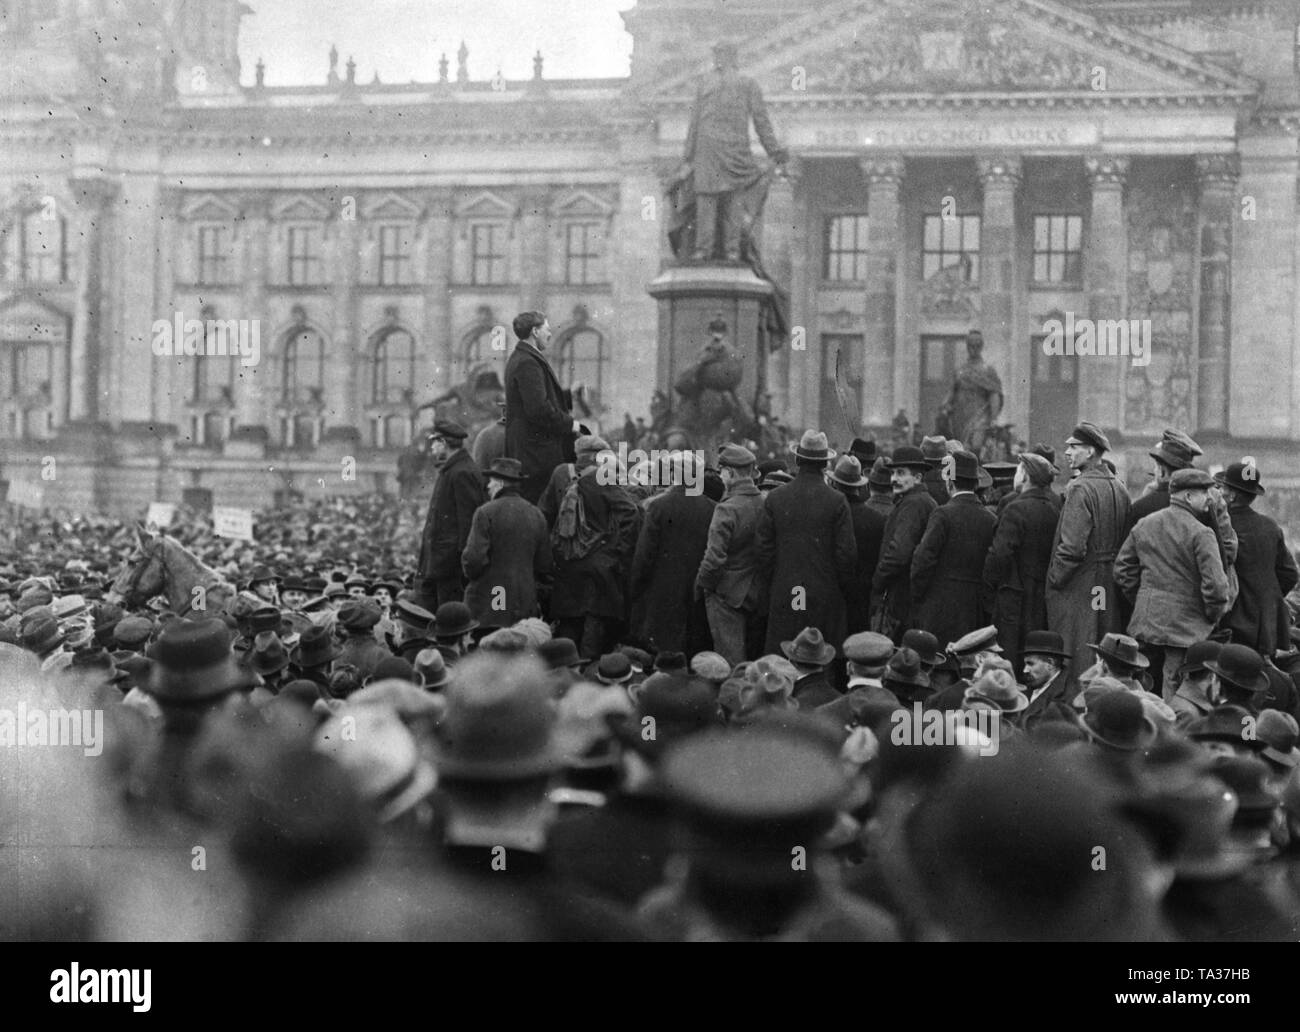 Demonstrators before the Reichstag during the deliberations on the Works Councils Act. - Stock Image